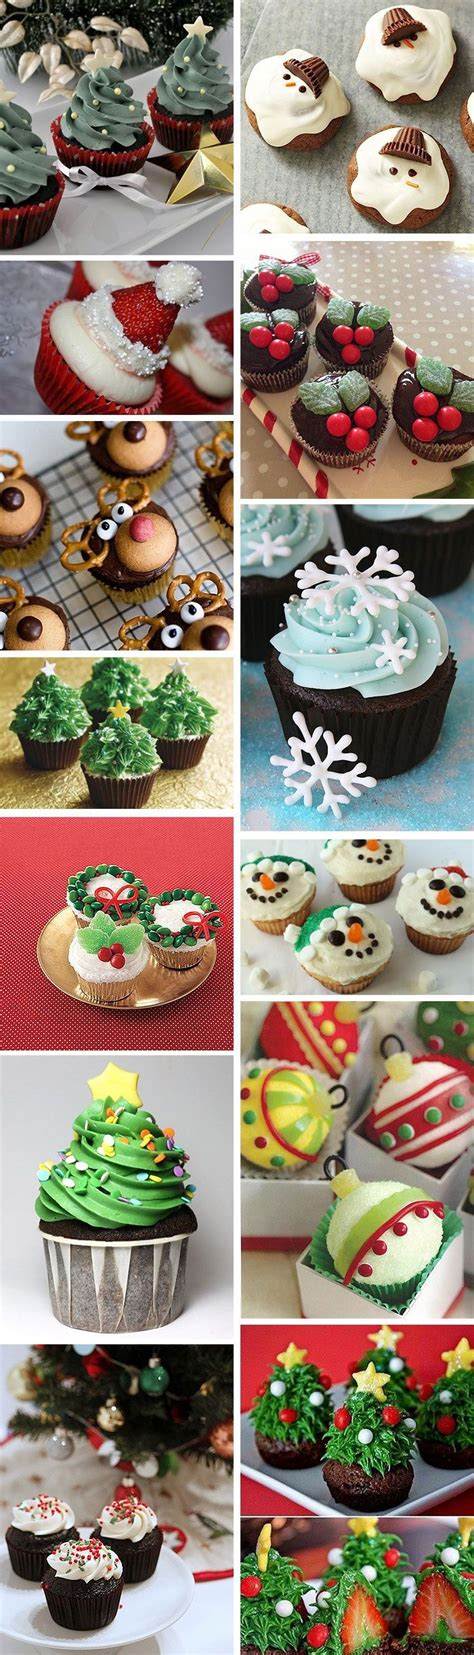 1000 ideas about cupcakes decorating on pinterest cupcake decorate cupcakes and easy cupcake